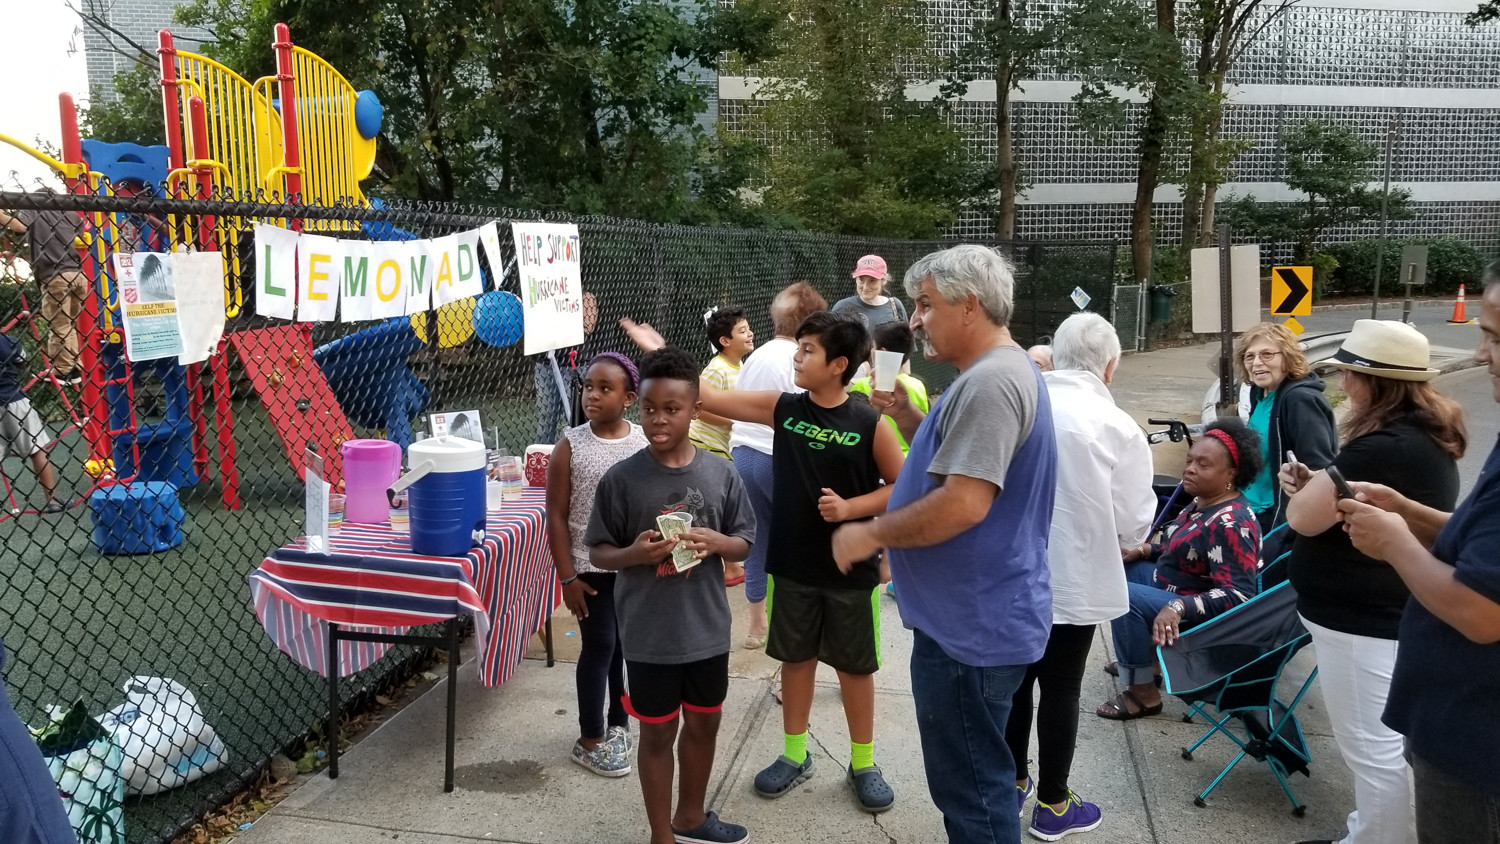 Children from the Winston Churchill apartments ran a successful lemonade stand, raising approximately $500 in two days for relief efforts for those affected by Hurricane Maria. The children used the money to purchase items like baby formula and diapers.